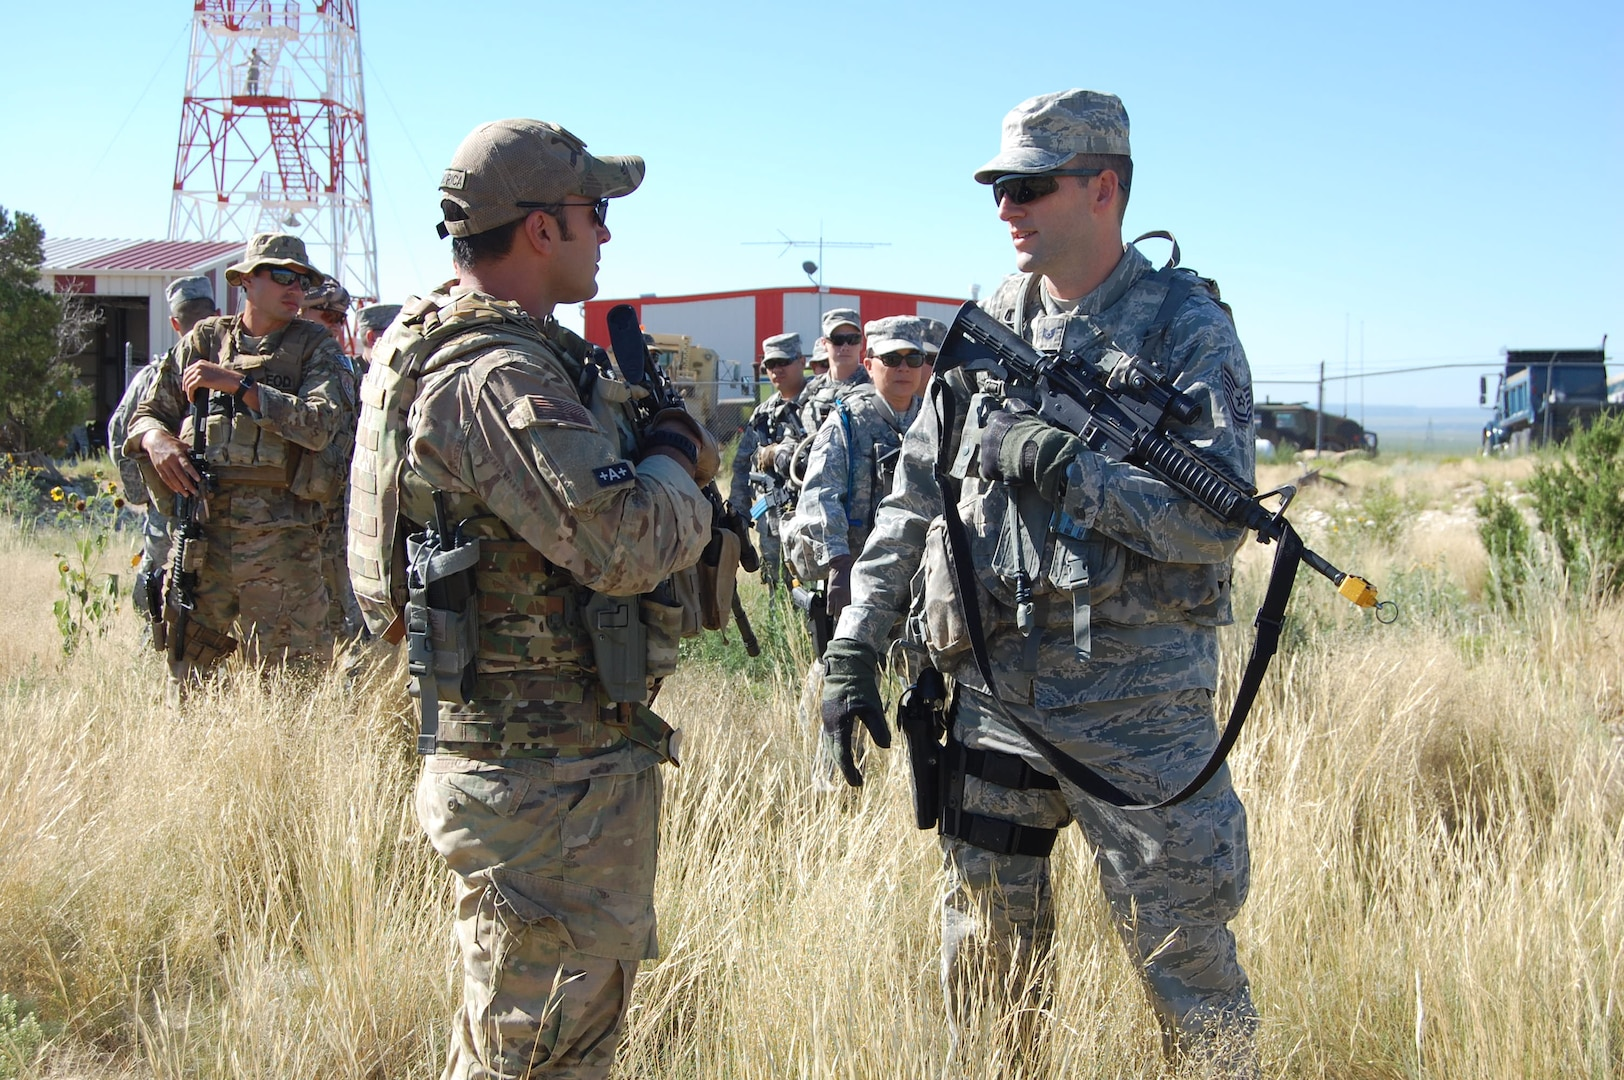 """Master Sgt. Richard """"Dick"""" Gibbons, EOD flight chief, 140th Explosive Ordnance Disposal Flight, works with Tech. Sgt. Andrew Wise, patrolman, 140th Security Forces Squadron, 140th Wing, Colorado Air National Guard, on squad movement tactics during a training day August 4 at Airburst Range, Fort Carson, Colo. (US Air National Guard photo by Capt. Kinder Blacke)"""